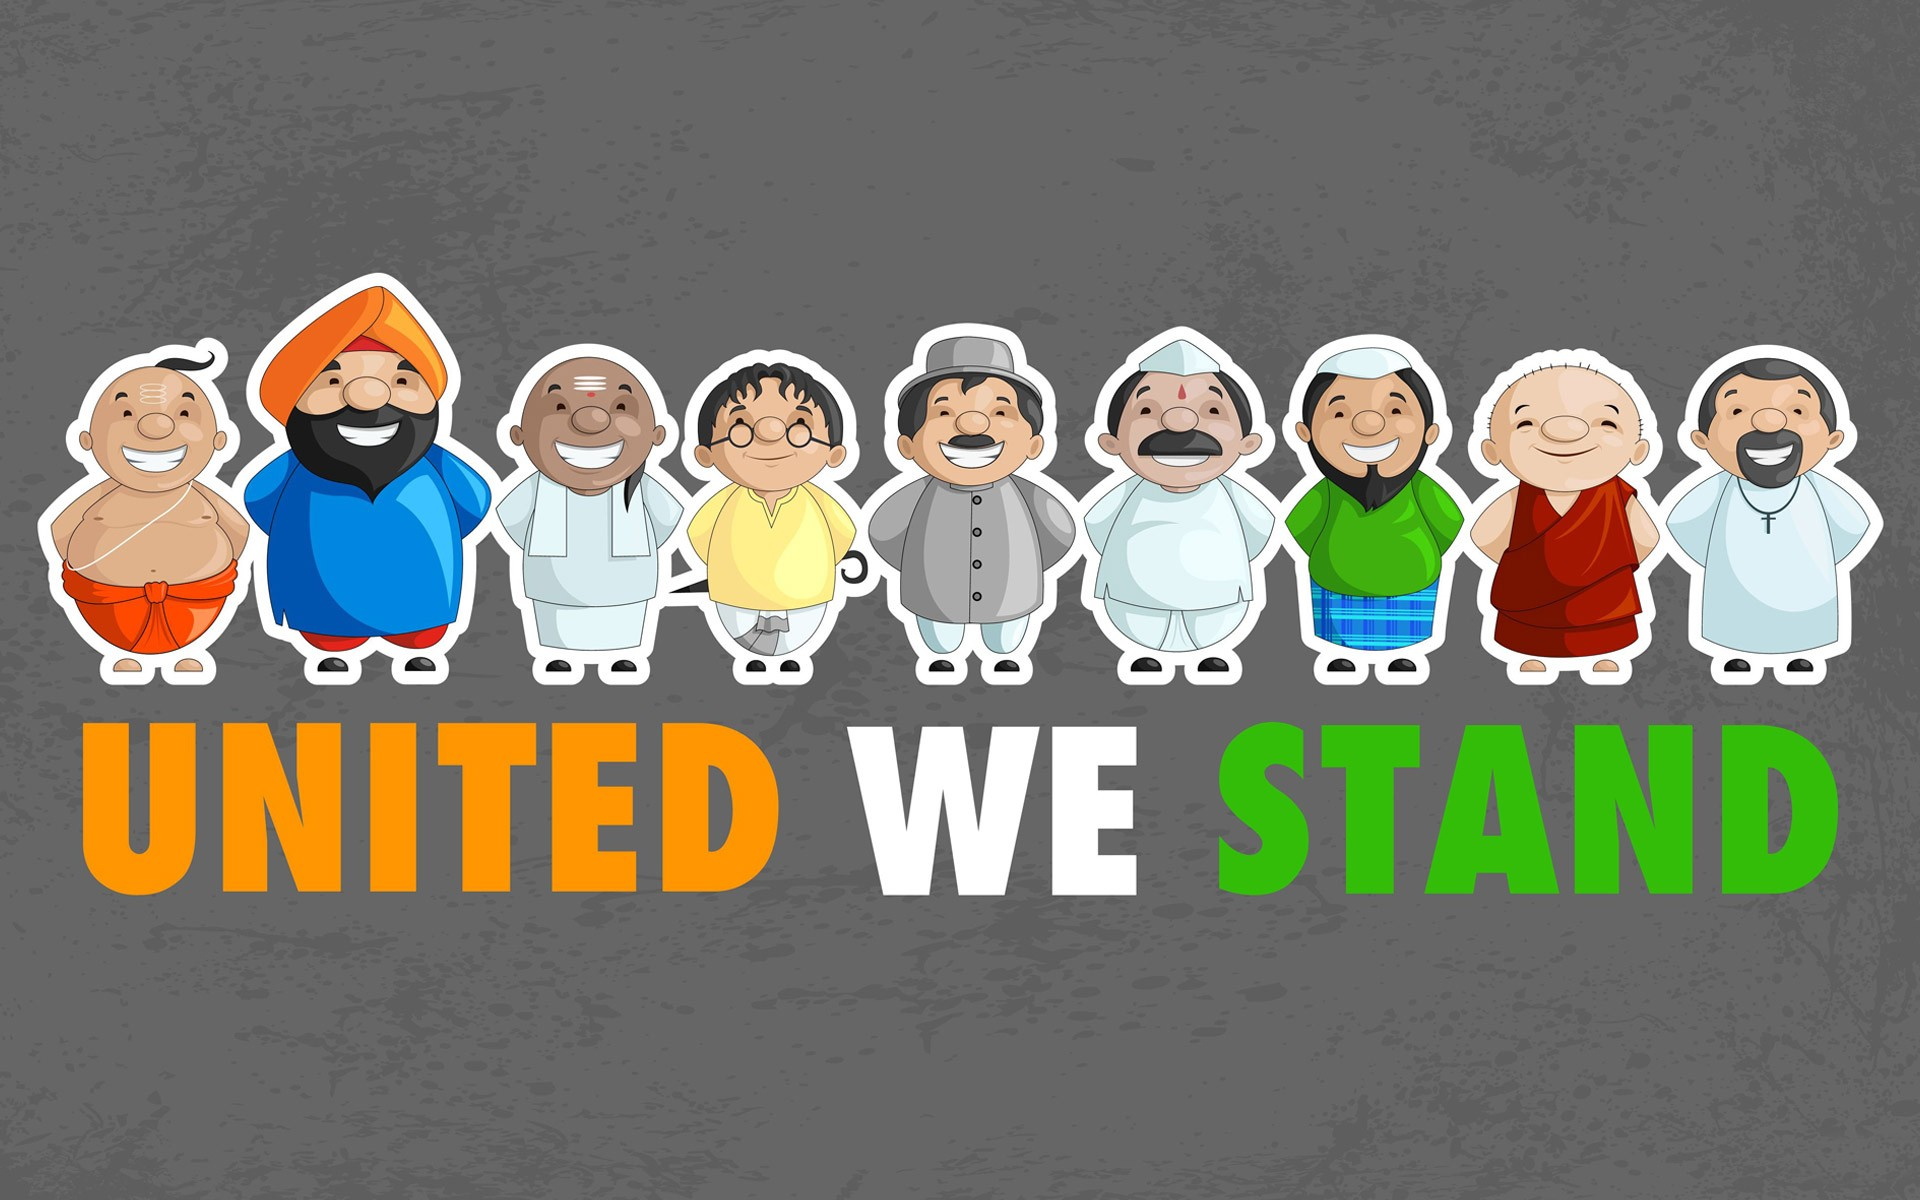 india a symbol of unity in diversity India the land of unity in diversity powerpoint presentation: oneness amongst men, the advancement of unity in diversity - this has been the core religion of india.